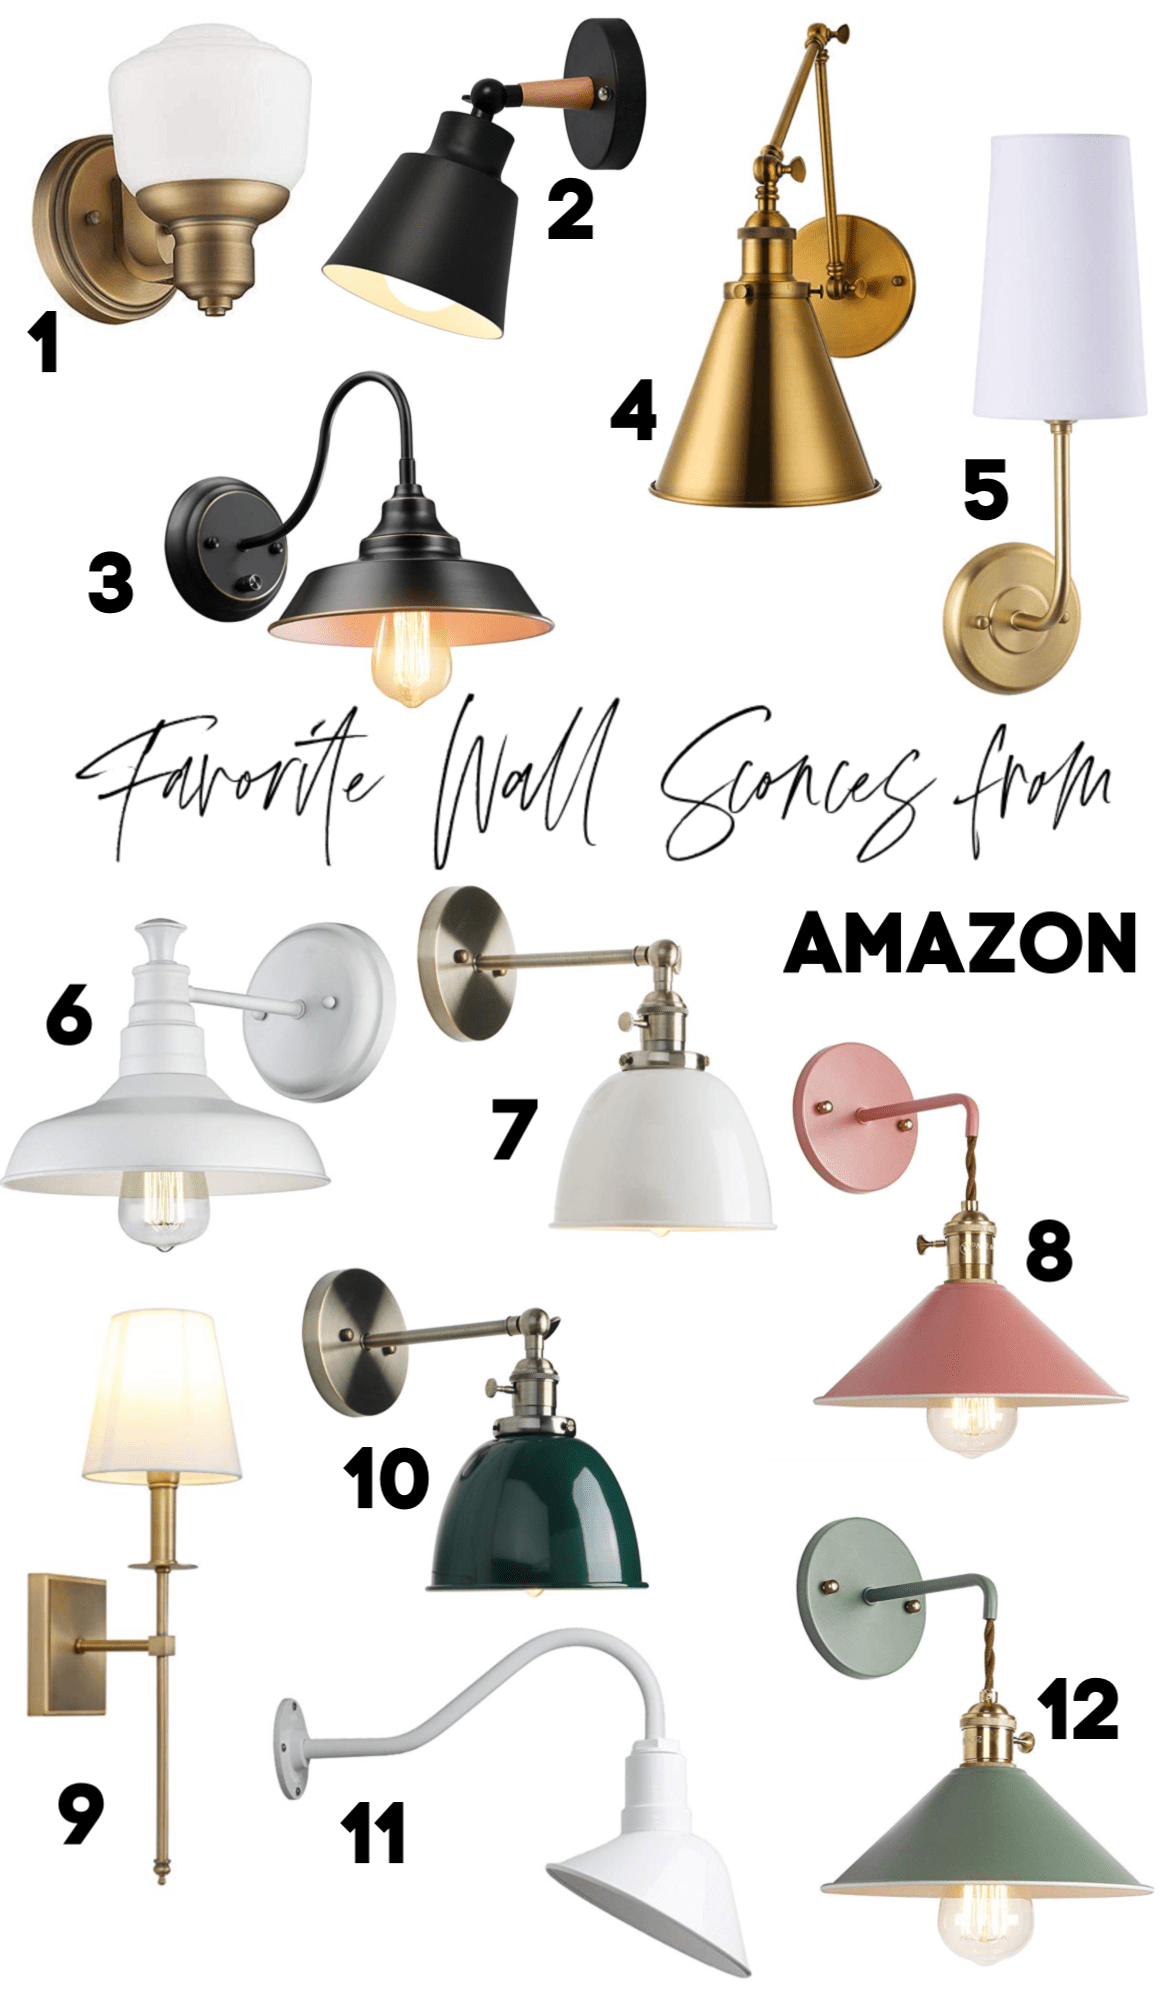 Favorite Wall Sconces From Amazon And Magic Light Trick Round Up Nesting With Grace Wall Sconces Bedroom Farmhouse Wall Lighting Magic Light Trick What is a wall sconce